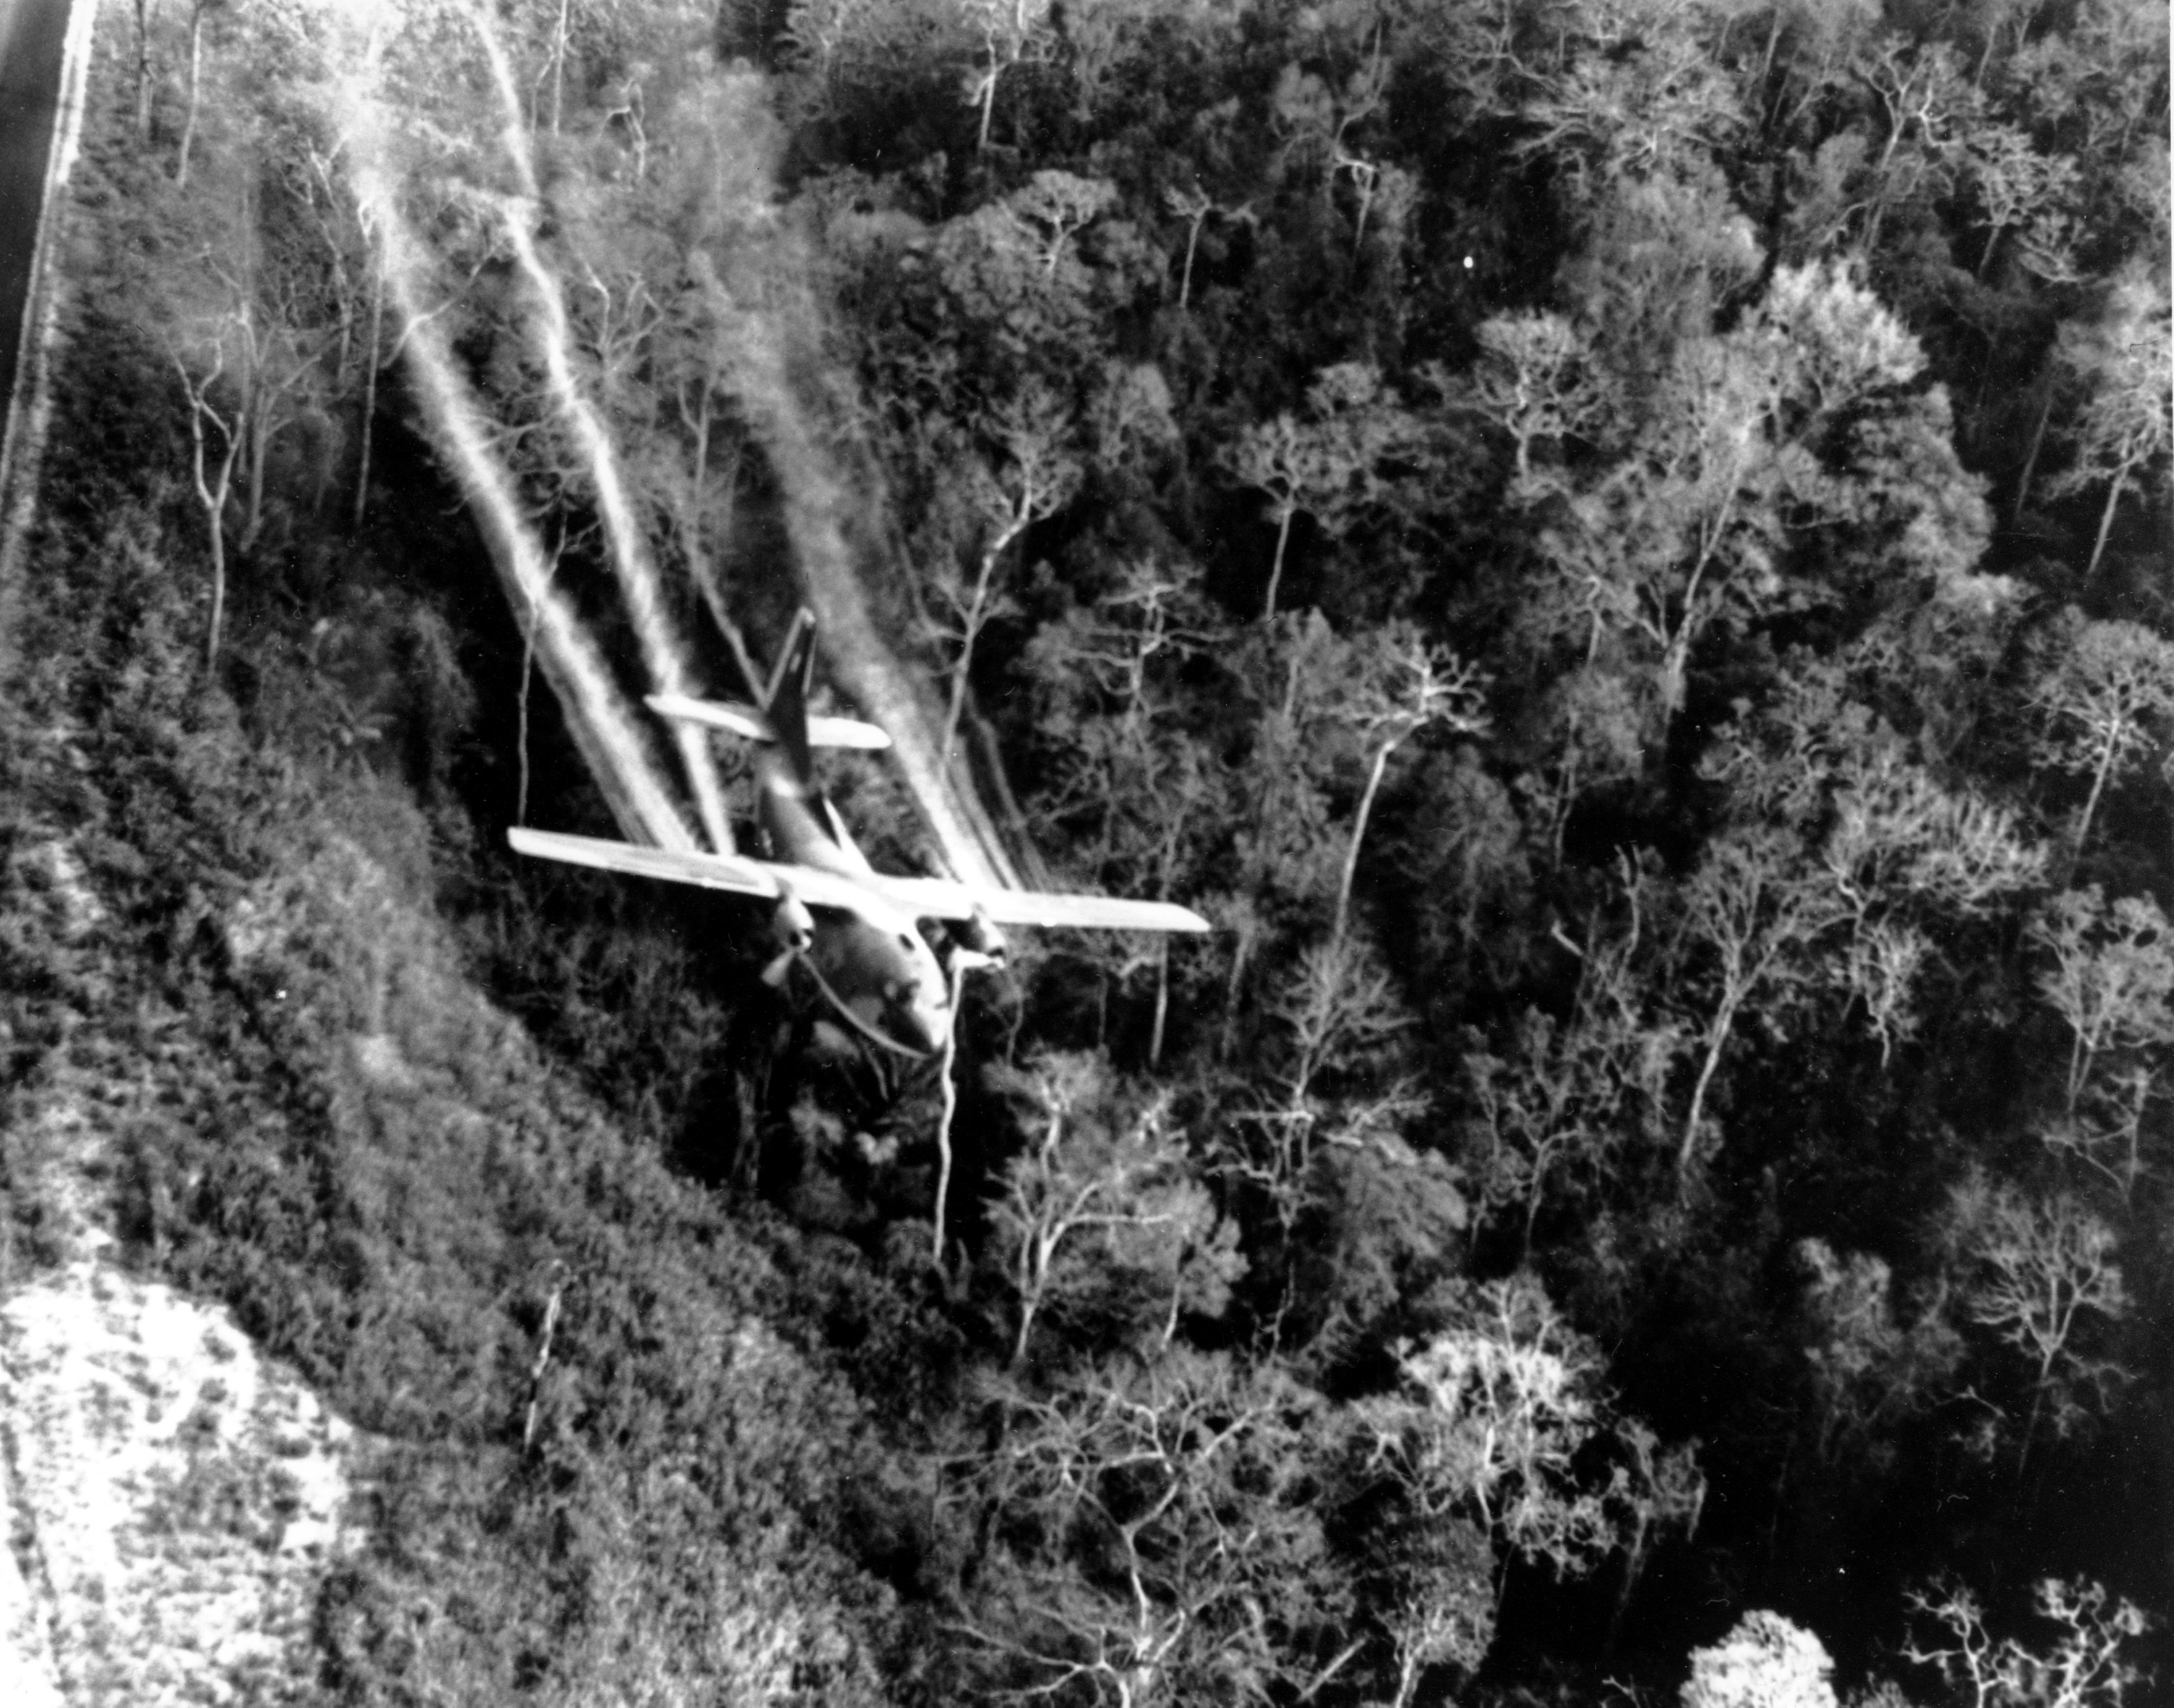 Agent Orange catching up to Vietnam veterans decades later